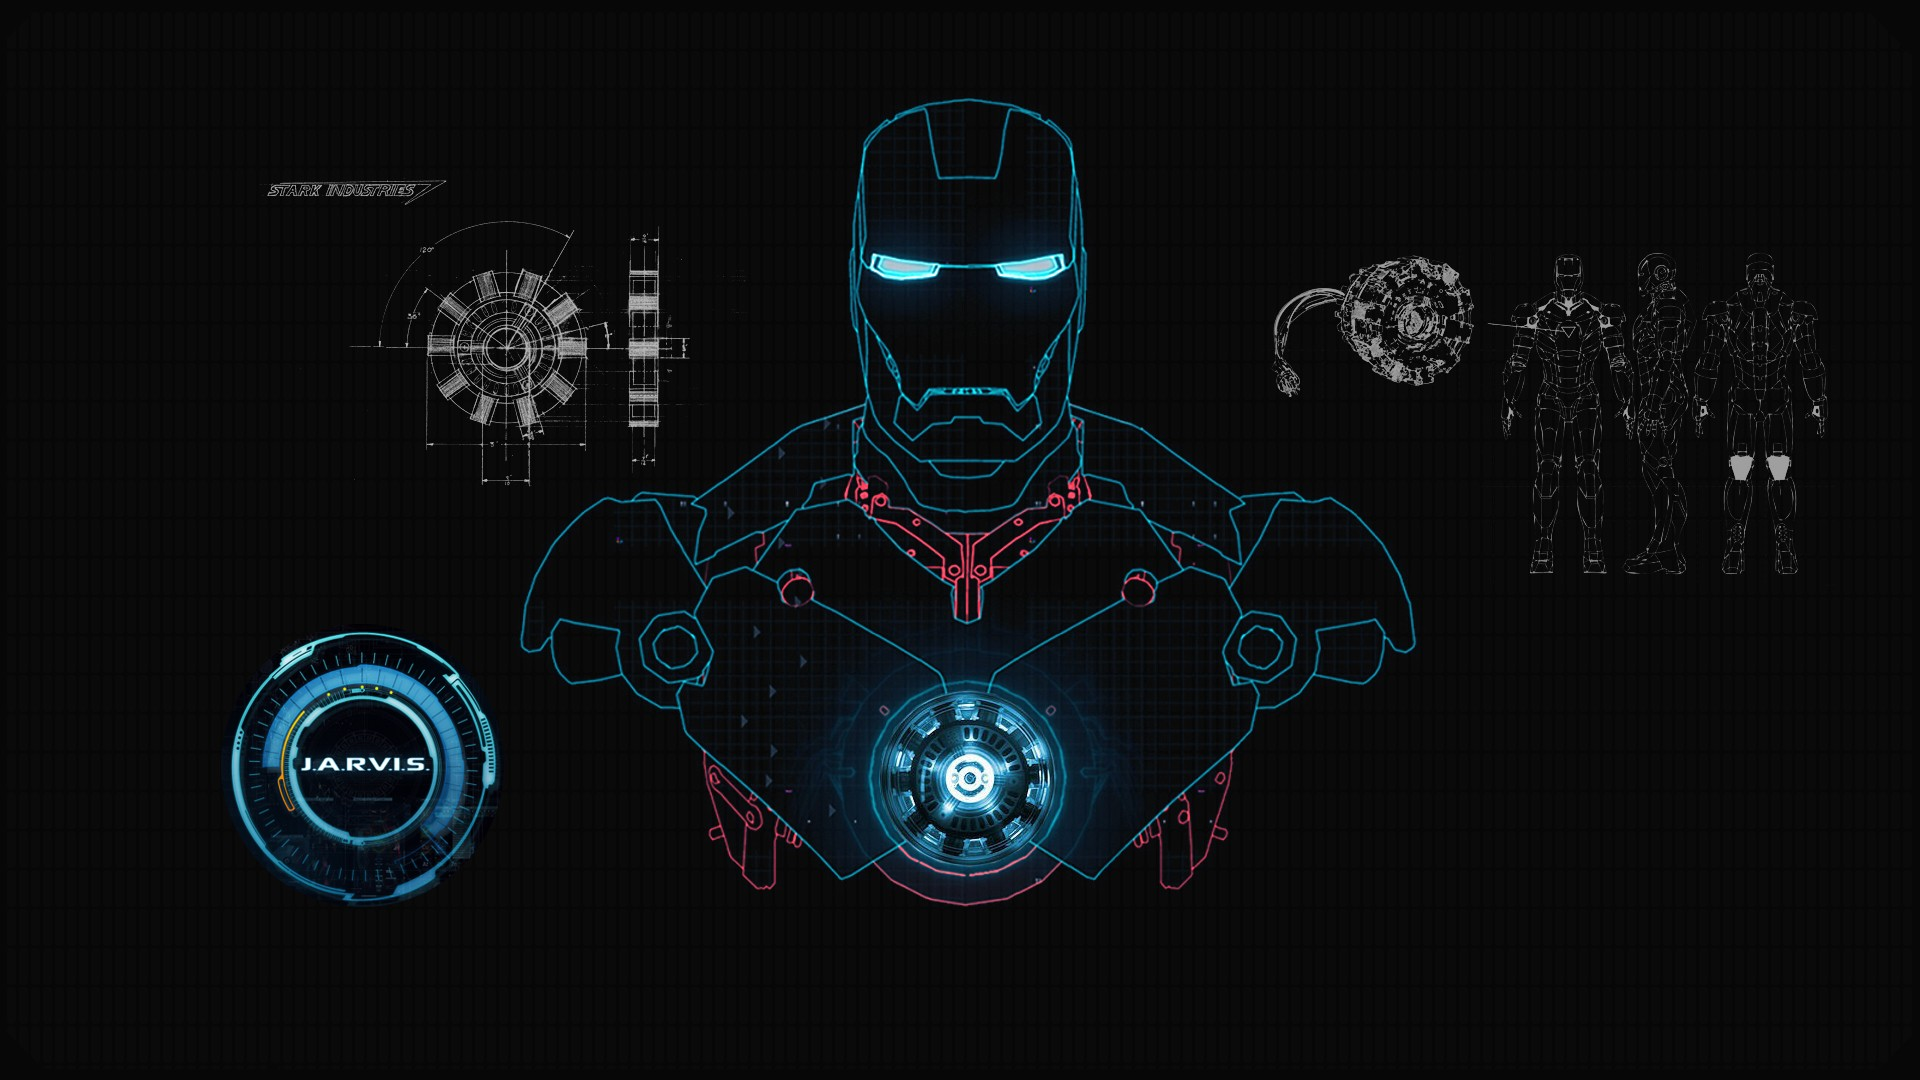 iron man wallpaper jarvis blue